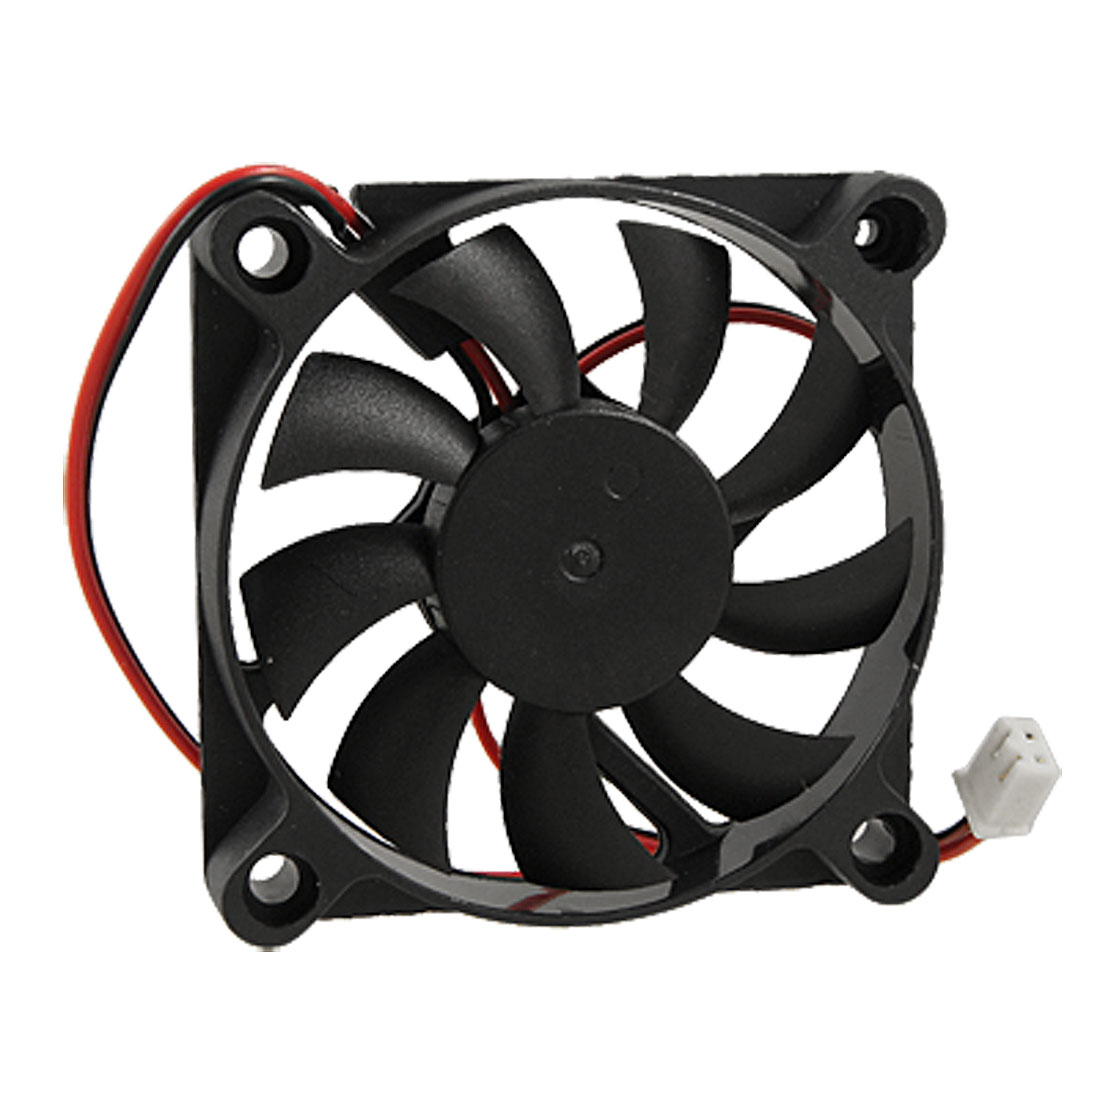 Desktop Computer PC Case DC 12V 0.16A 60mm 2 Terminals Cooler Cooling Fan